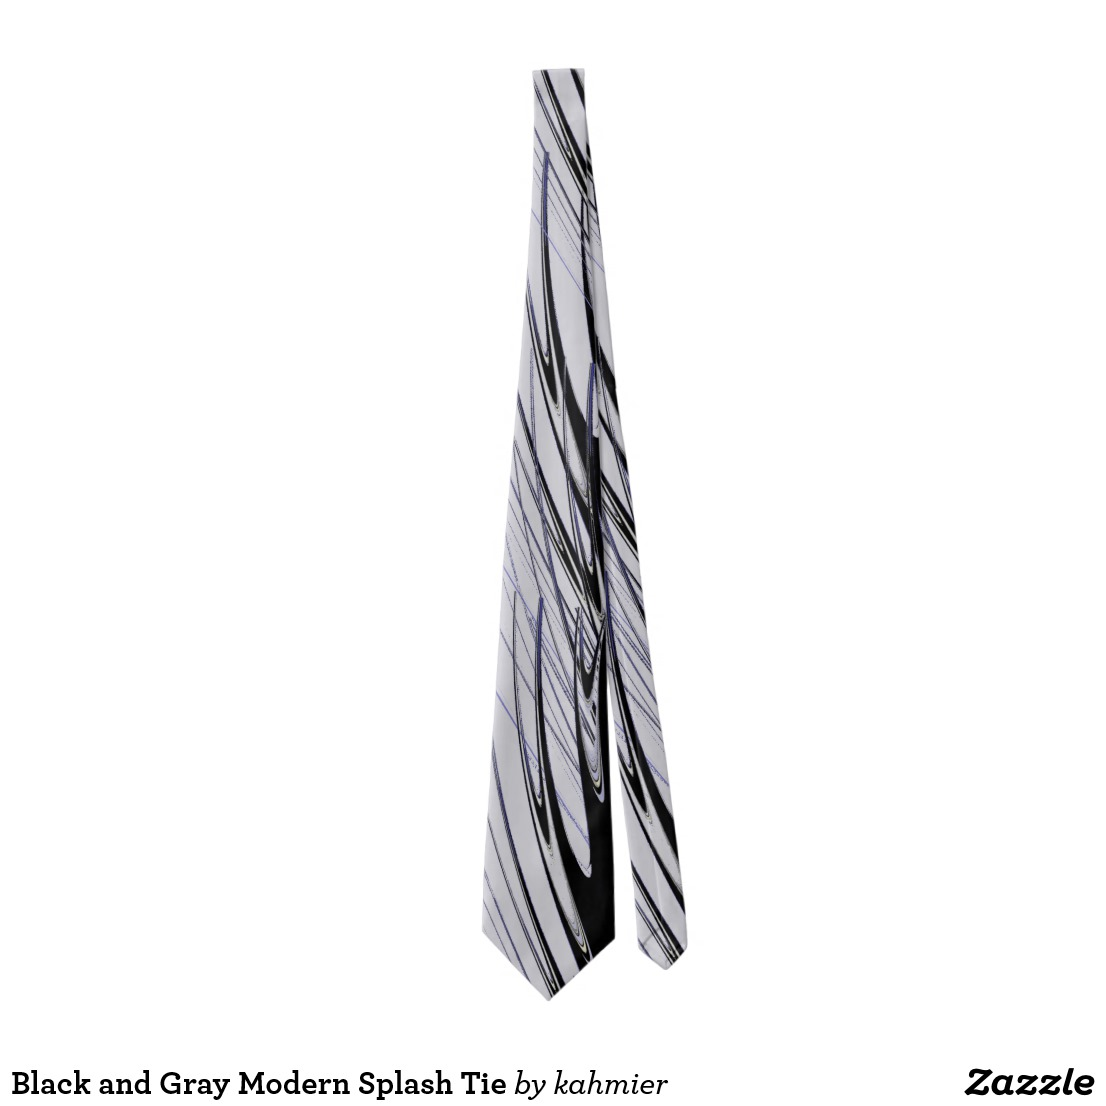 Black and Gray Modern Splash Tie